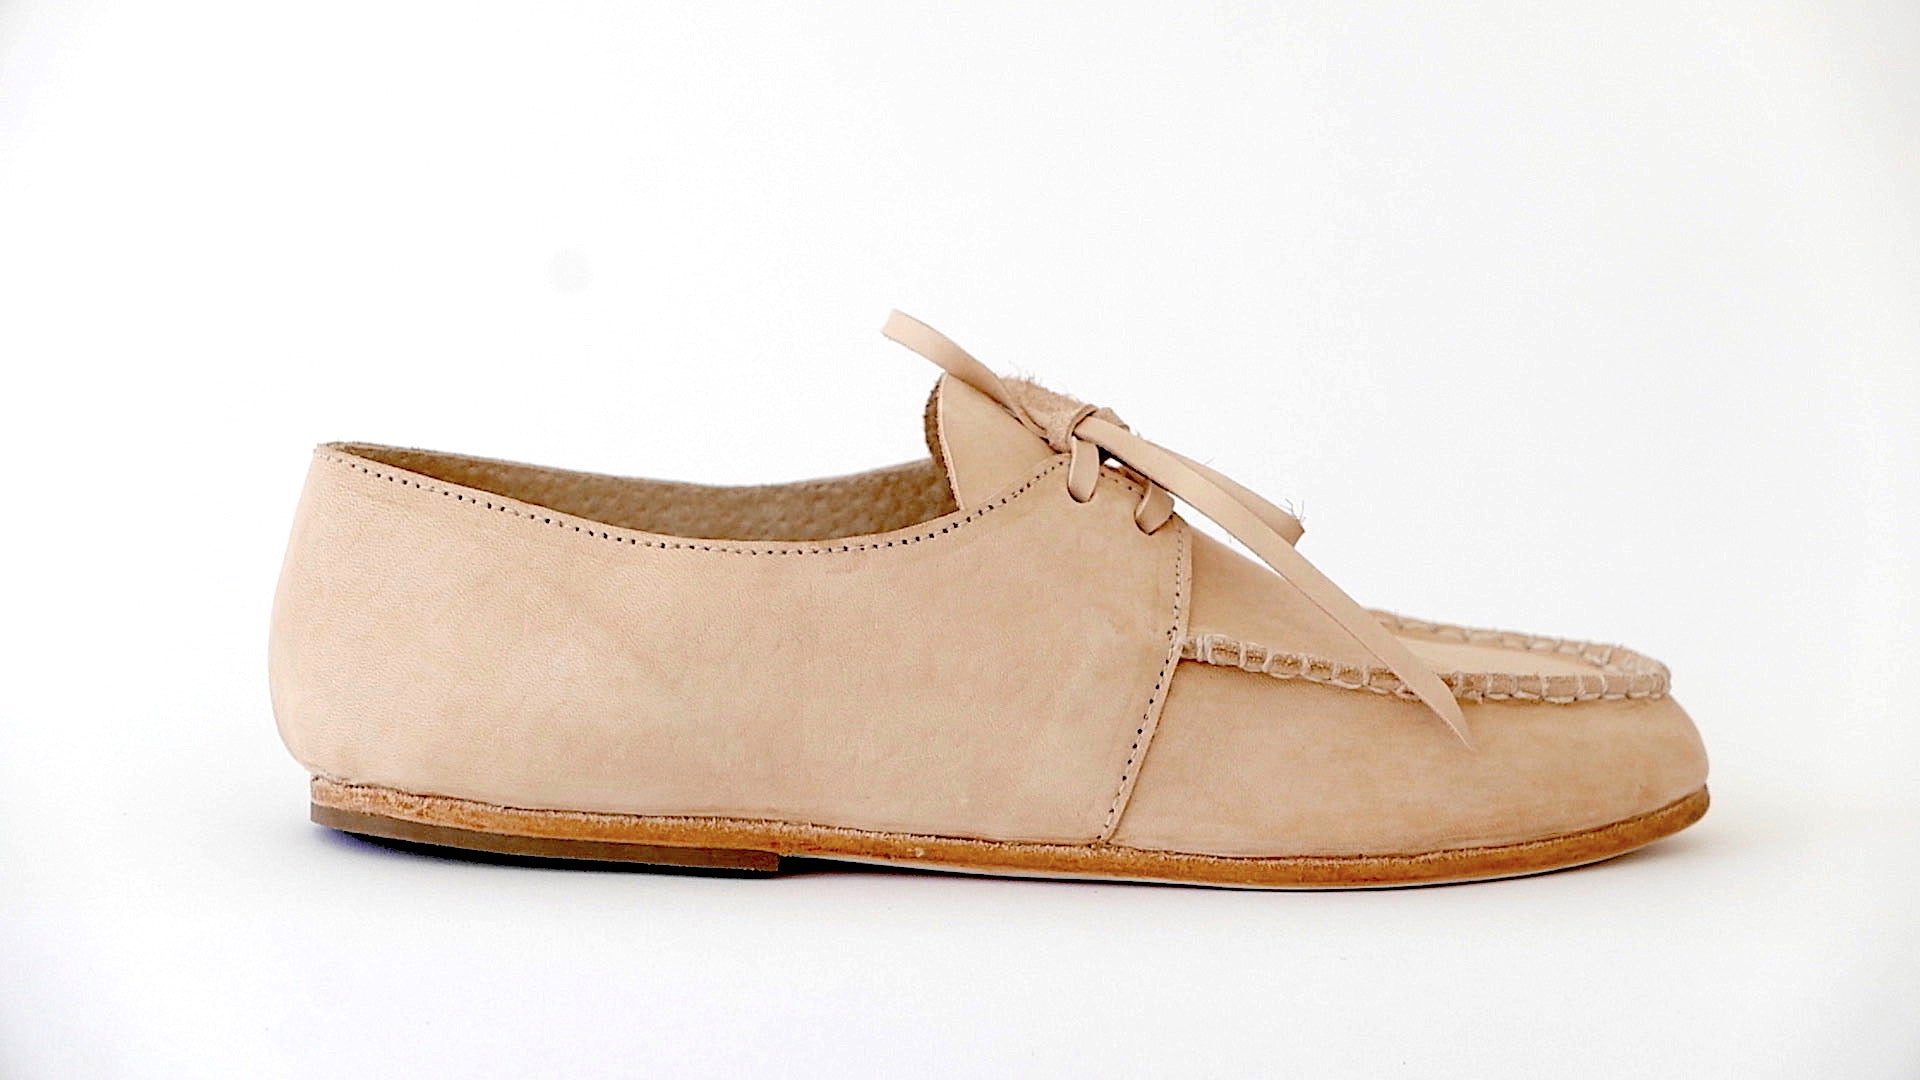 MOCCASIN / UNDYED